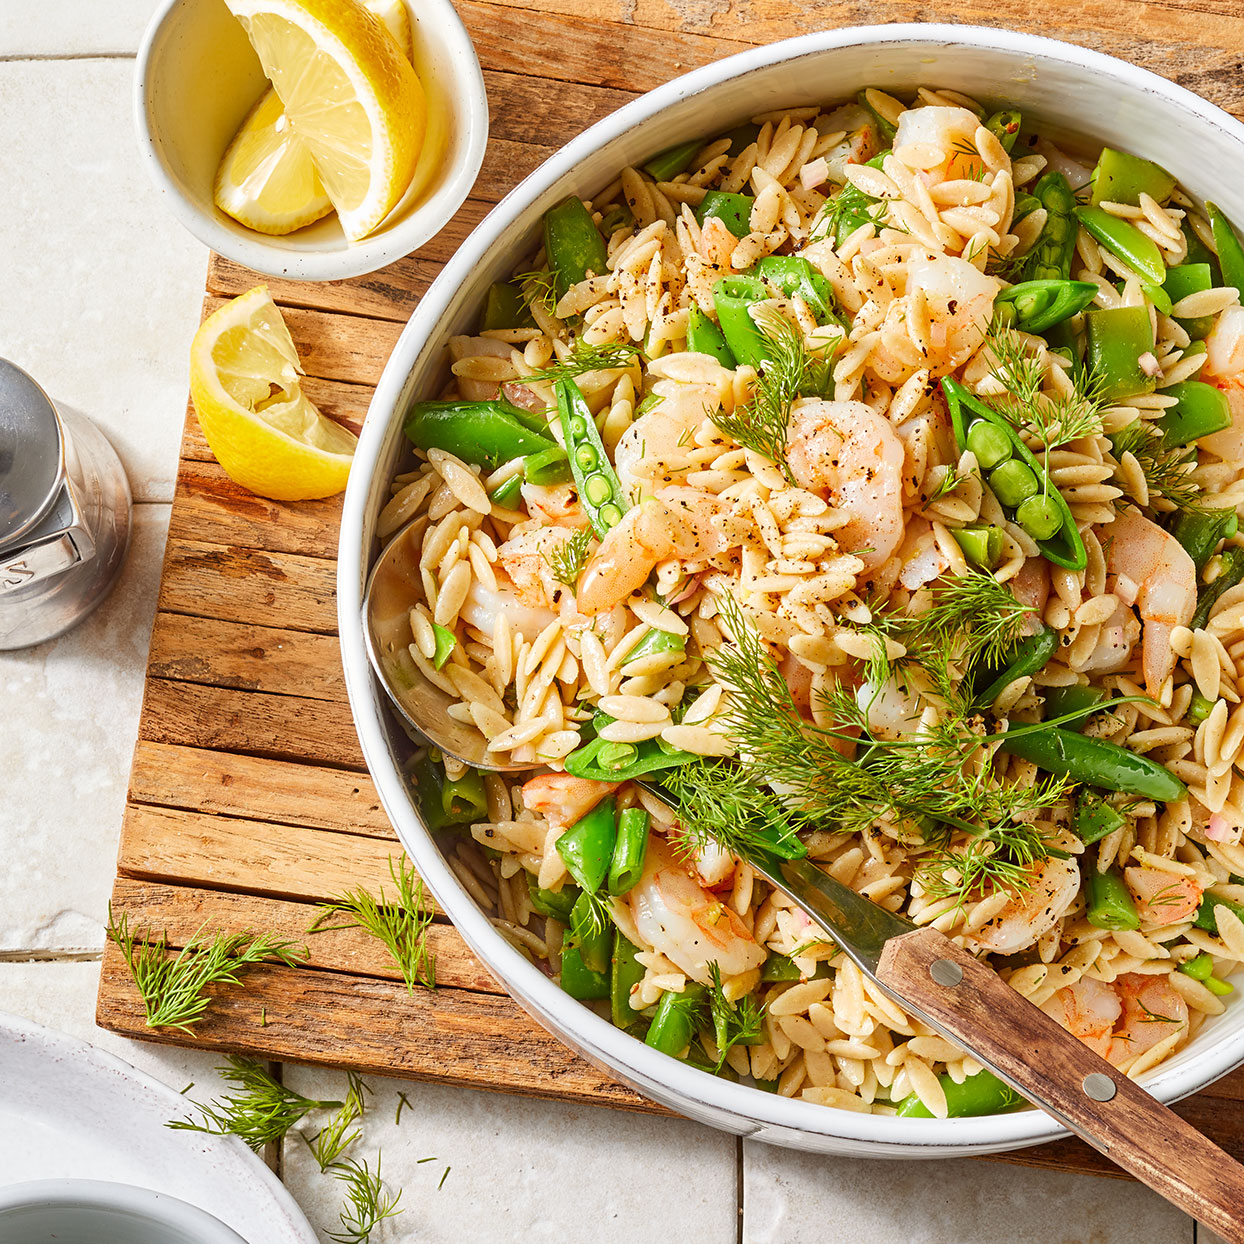 Consider making a double batch of this easy pasta salad--it's delicious the next day. The orzo will absorb the dressing as it sits, so add a little more olive oil and lemon juice if you'd like. Source: EatingWell Magazine, May 2020